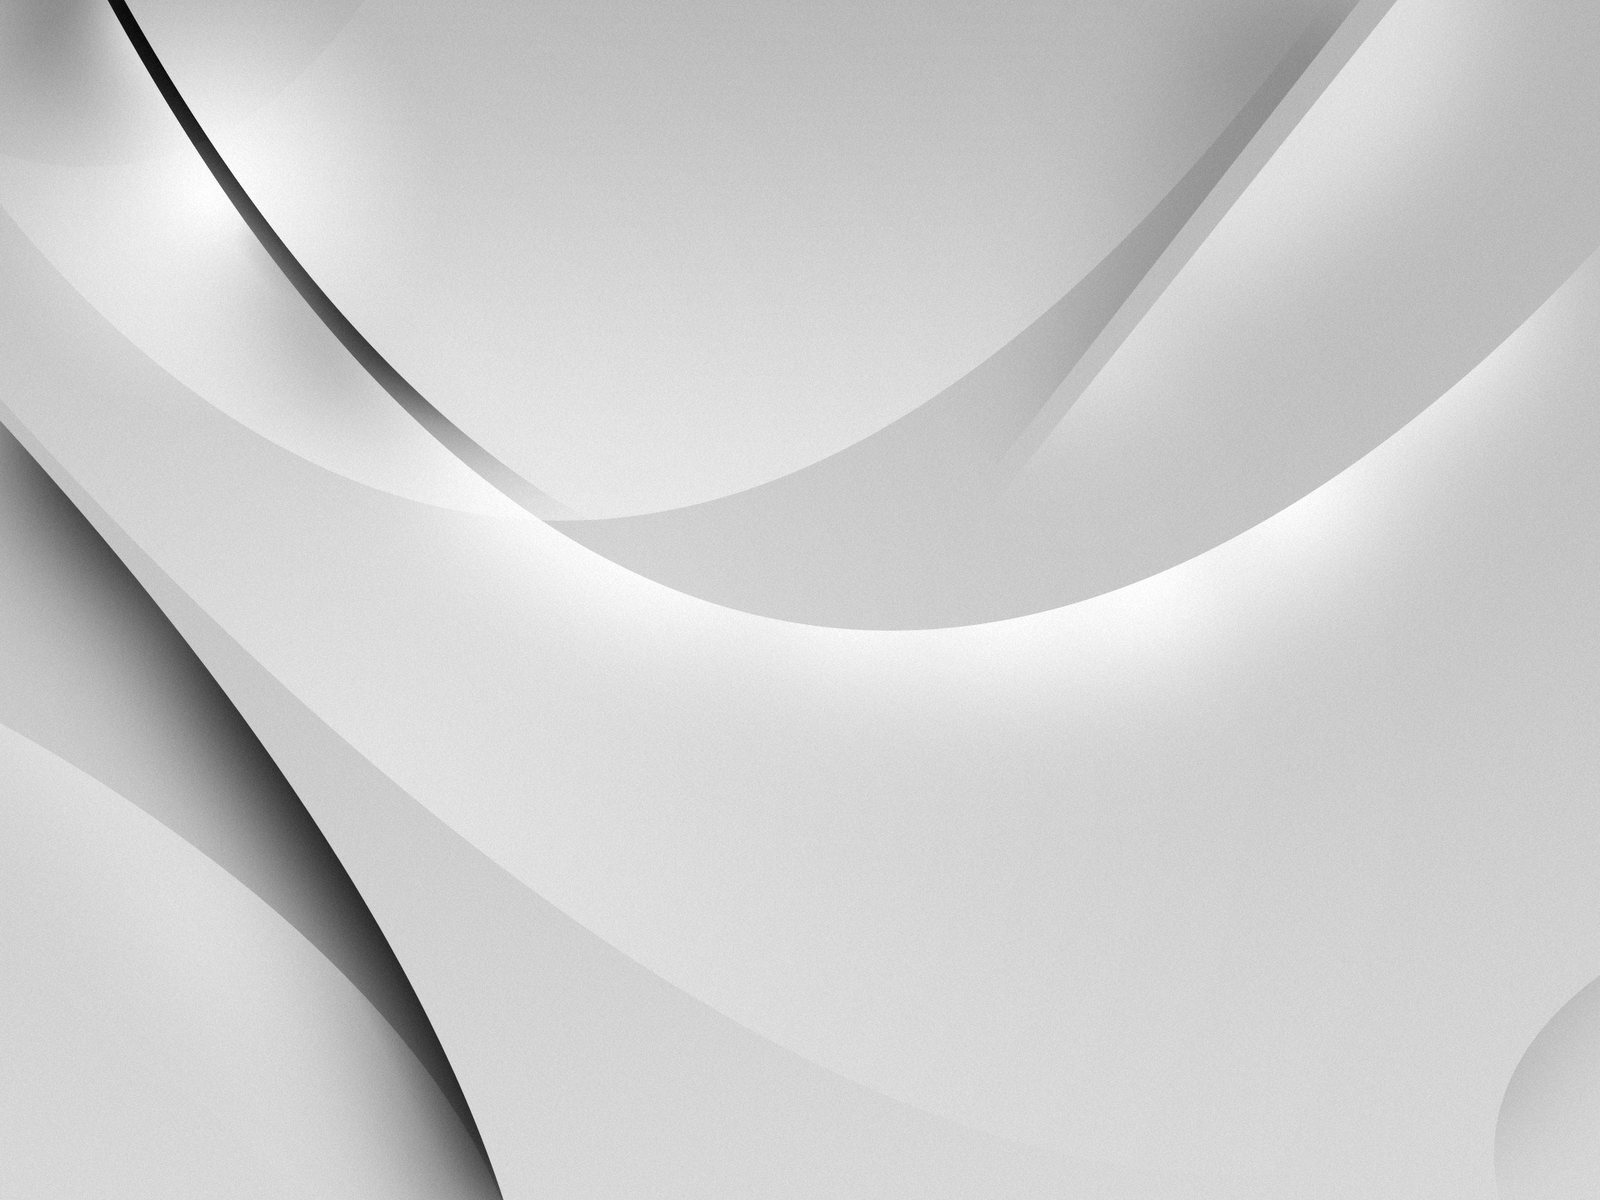 Black And White Wallpapers Grey Abstract Wallpaper Abstract Wallpaper White Wallpaper Black And White Wallpaper